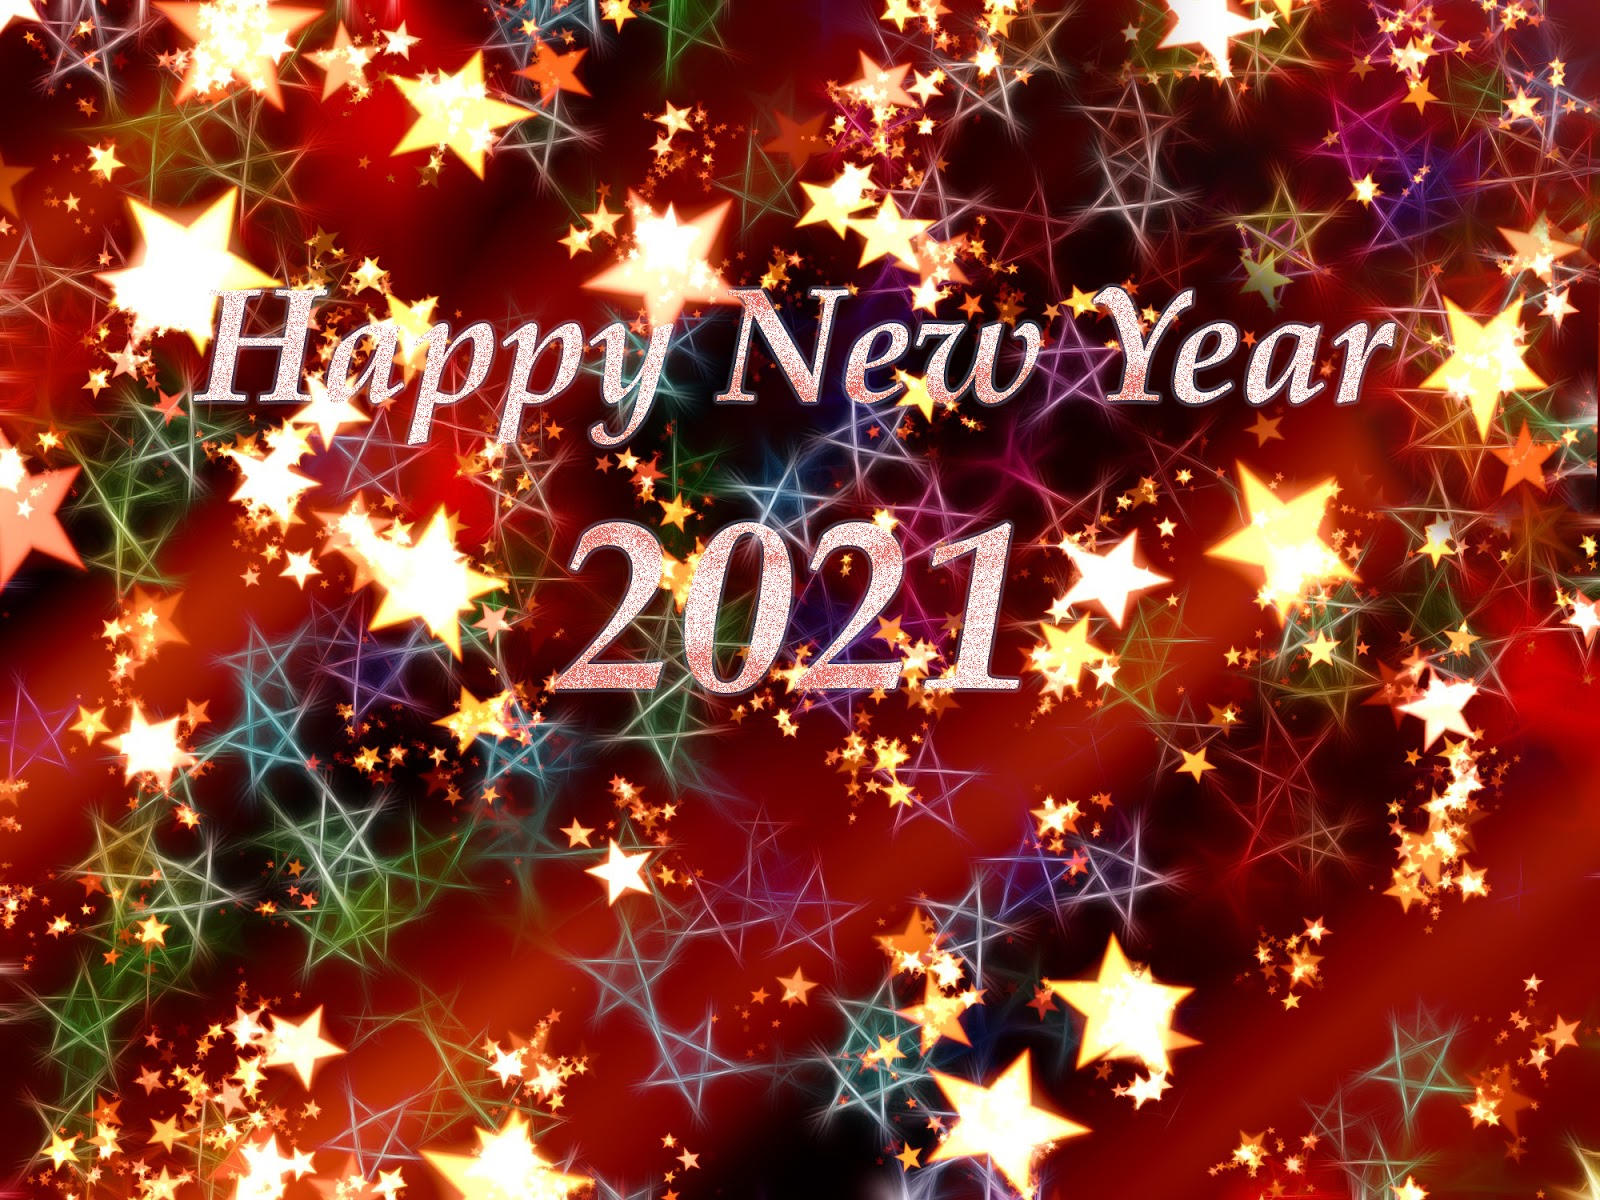 light boxes made with stars happy new year 2021 wallpapers